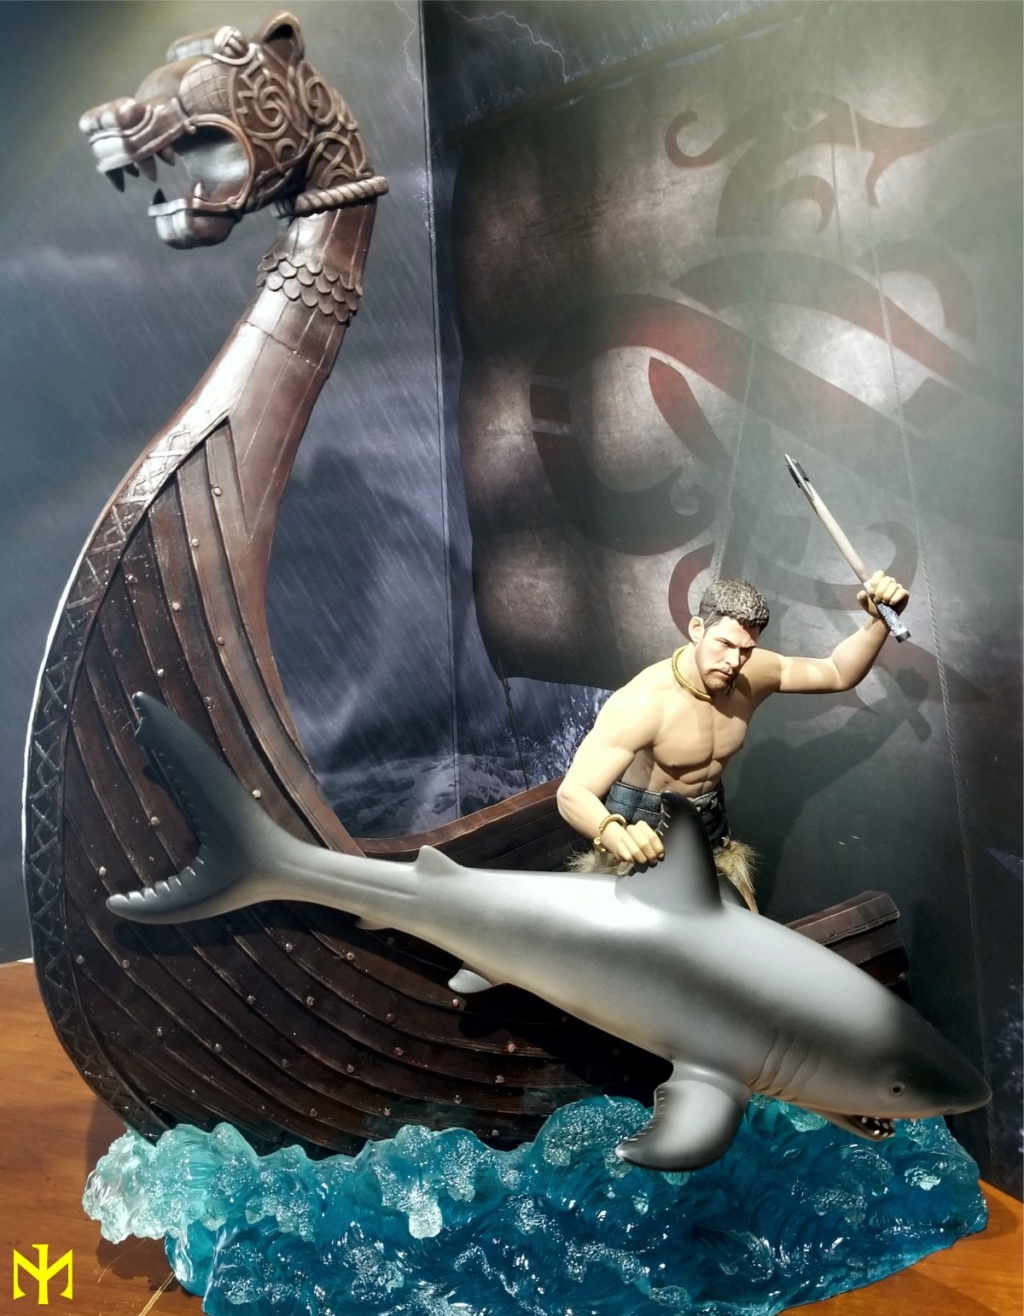 Vikings Vanquisher Viking Ship Diorama Coomodel Review Viking40